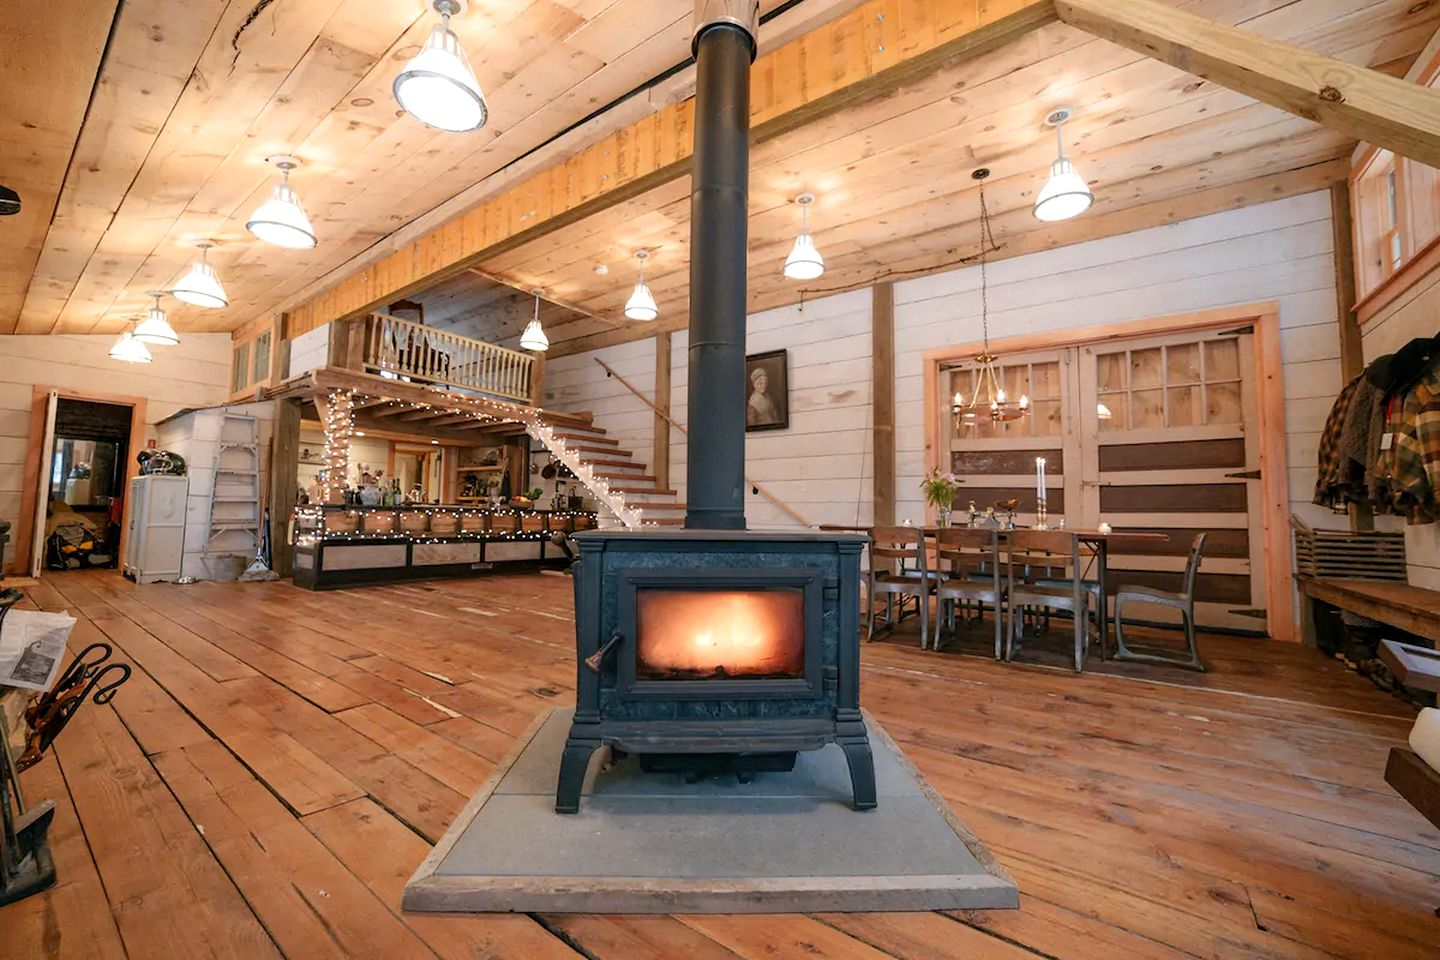 Vermont vacation rental ideal for glamping.